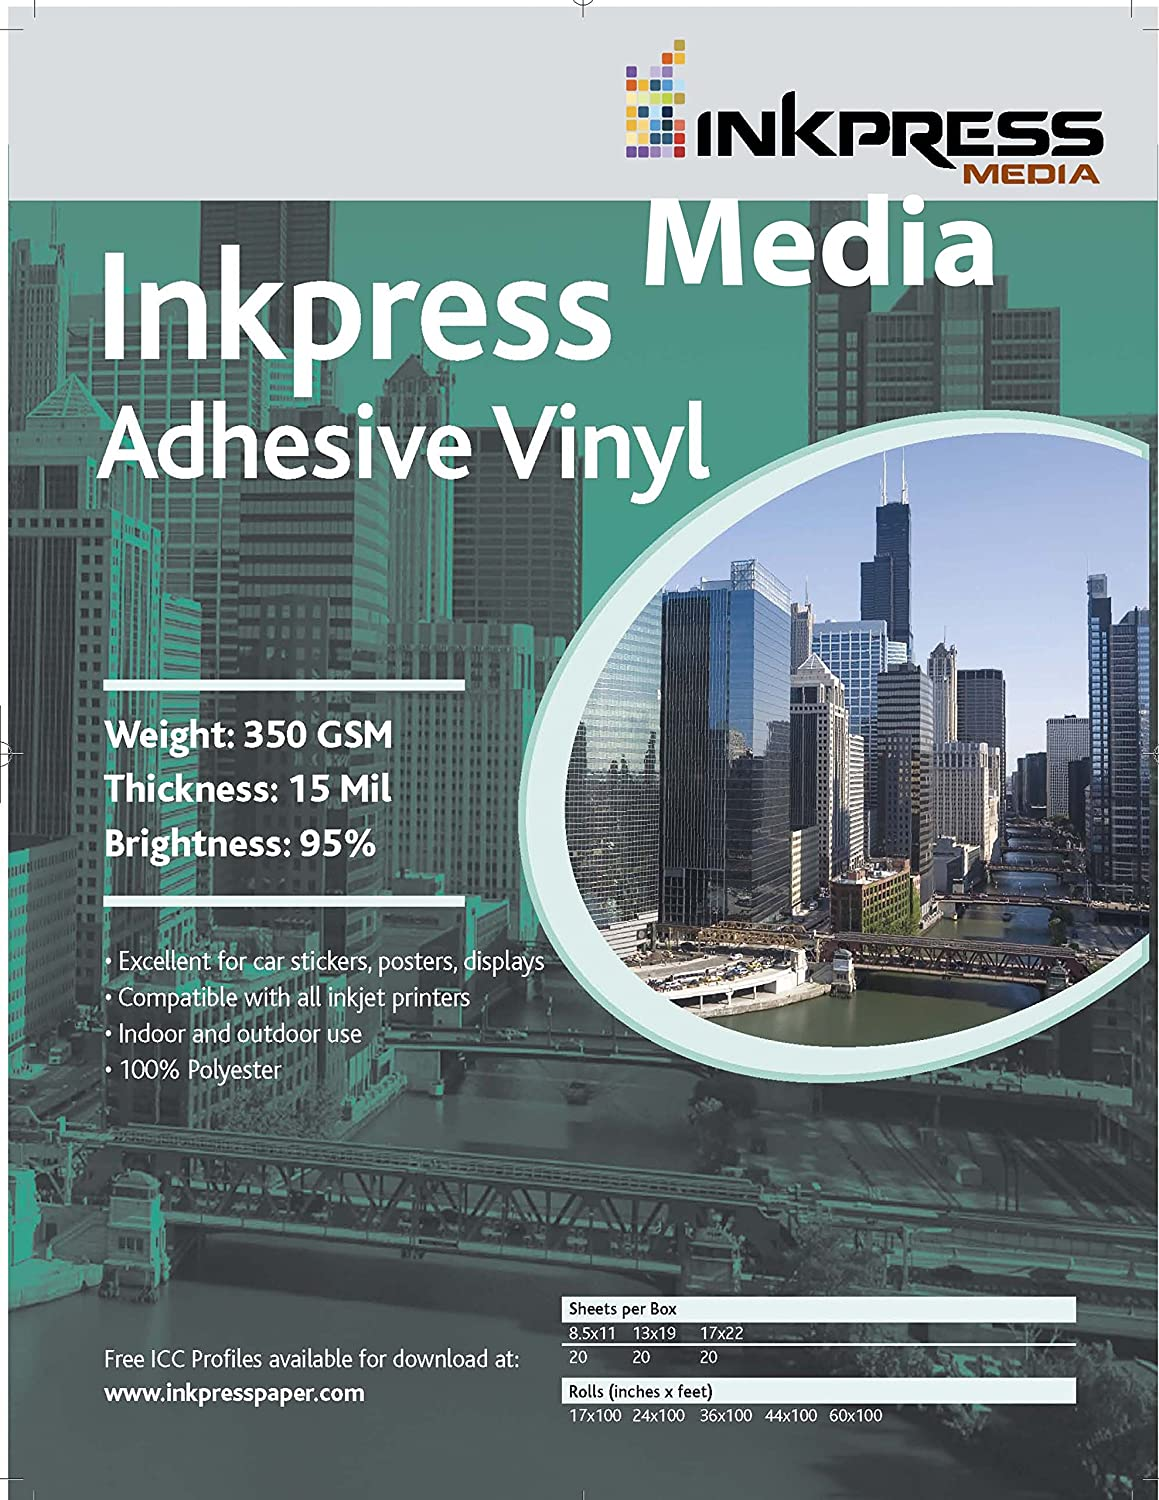 INKPRESS MEDIA AV172220,350GSM,13MIL, 95 Percent Bright, Photo Paper (#AV172220)